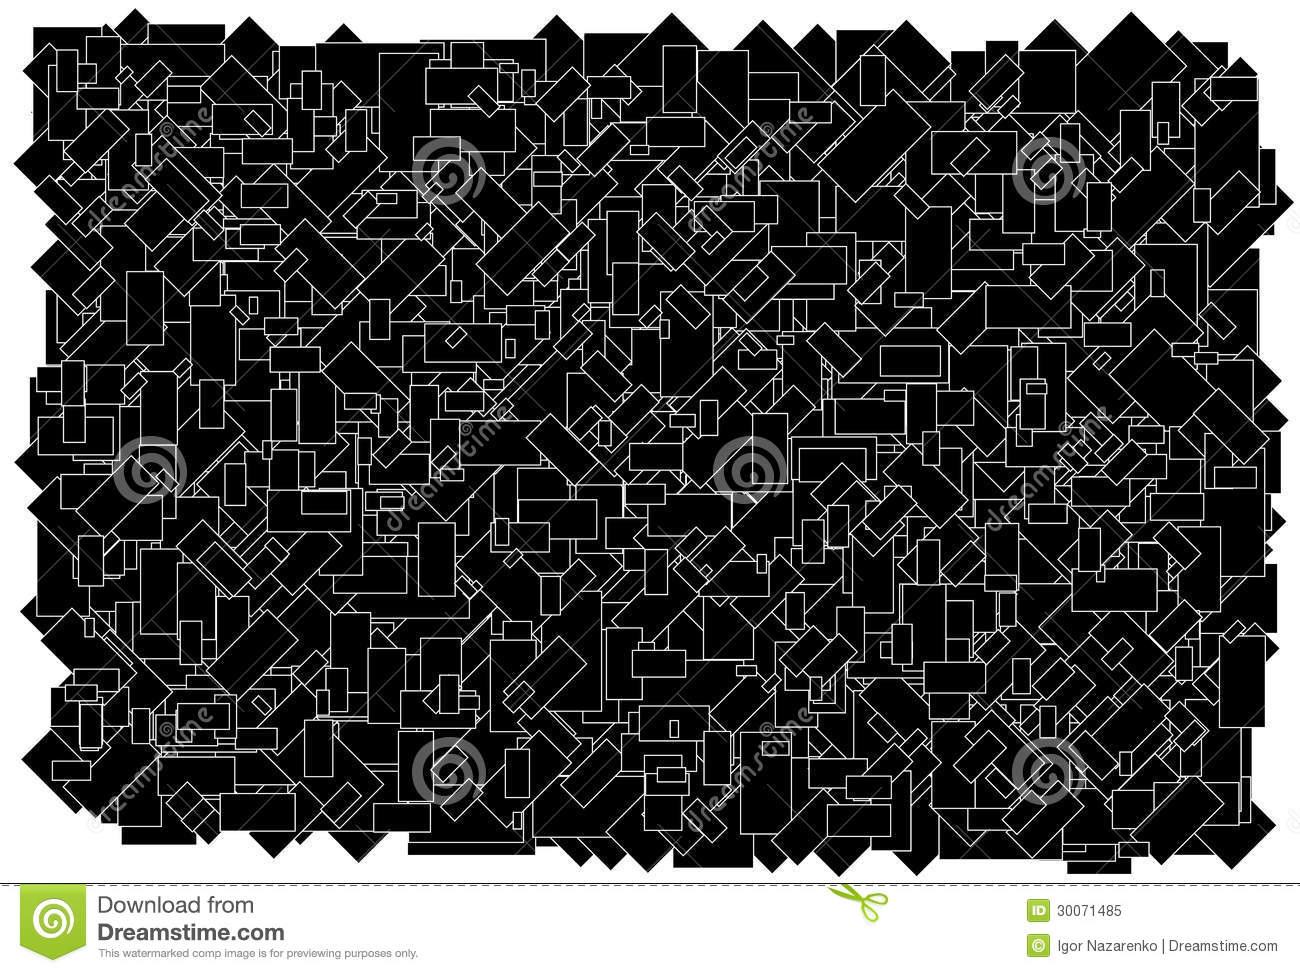 Background made of various size black rectangles w